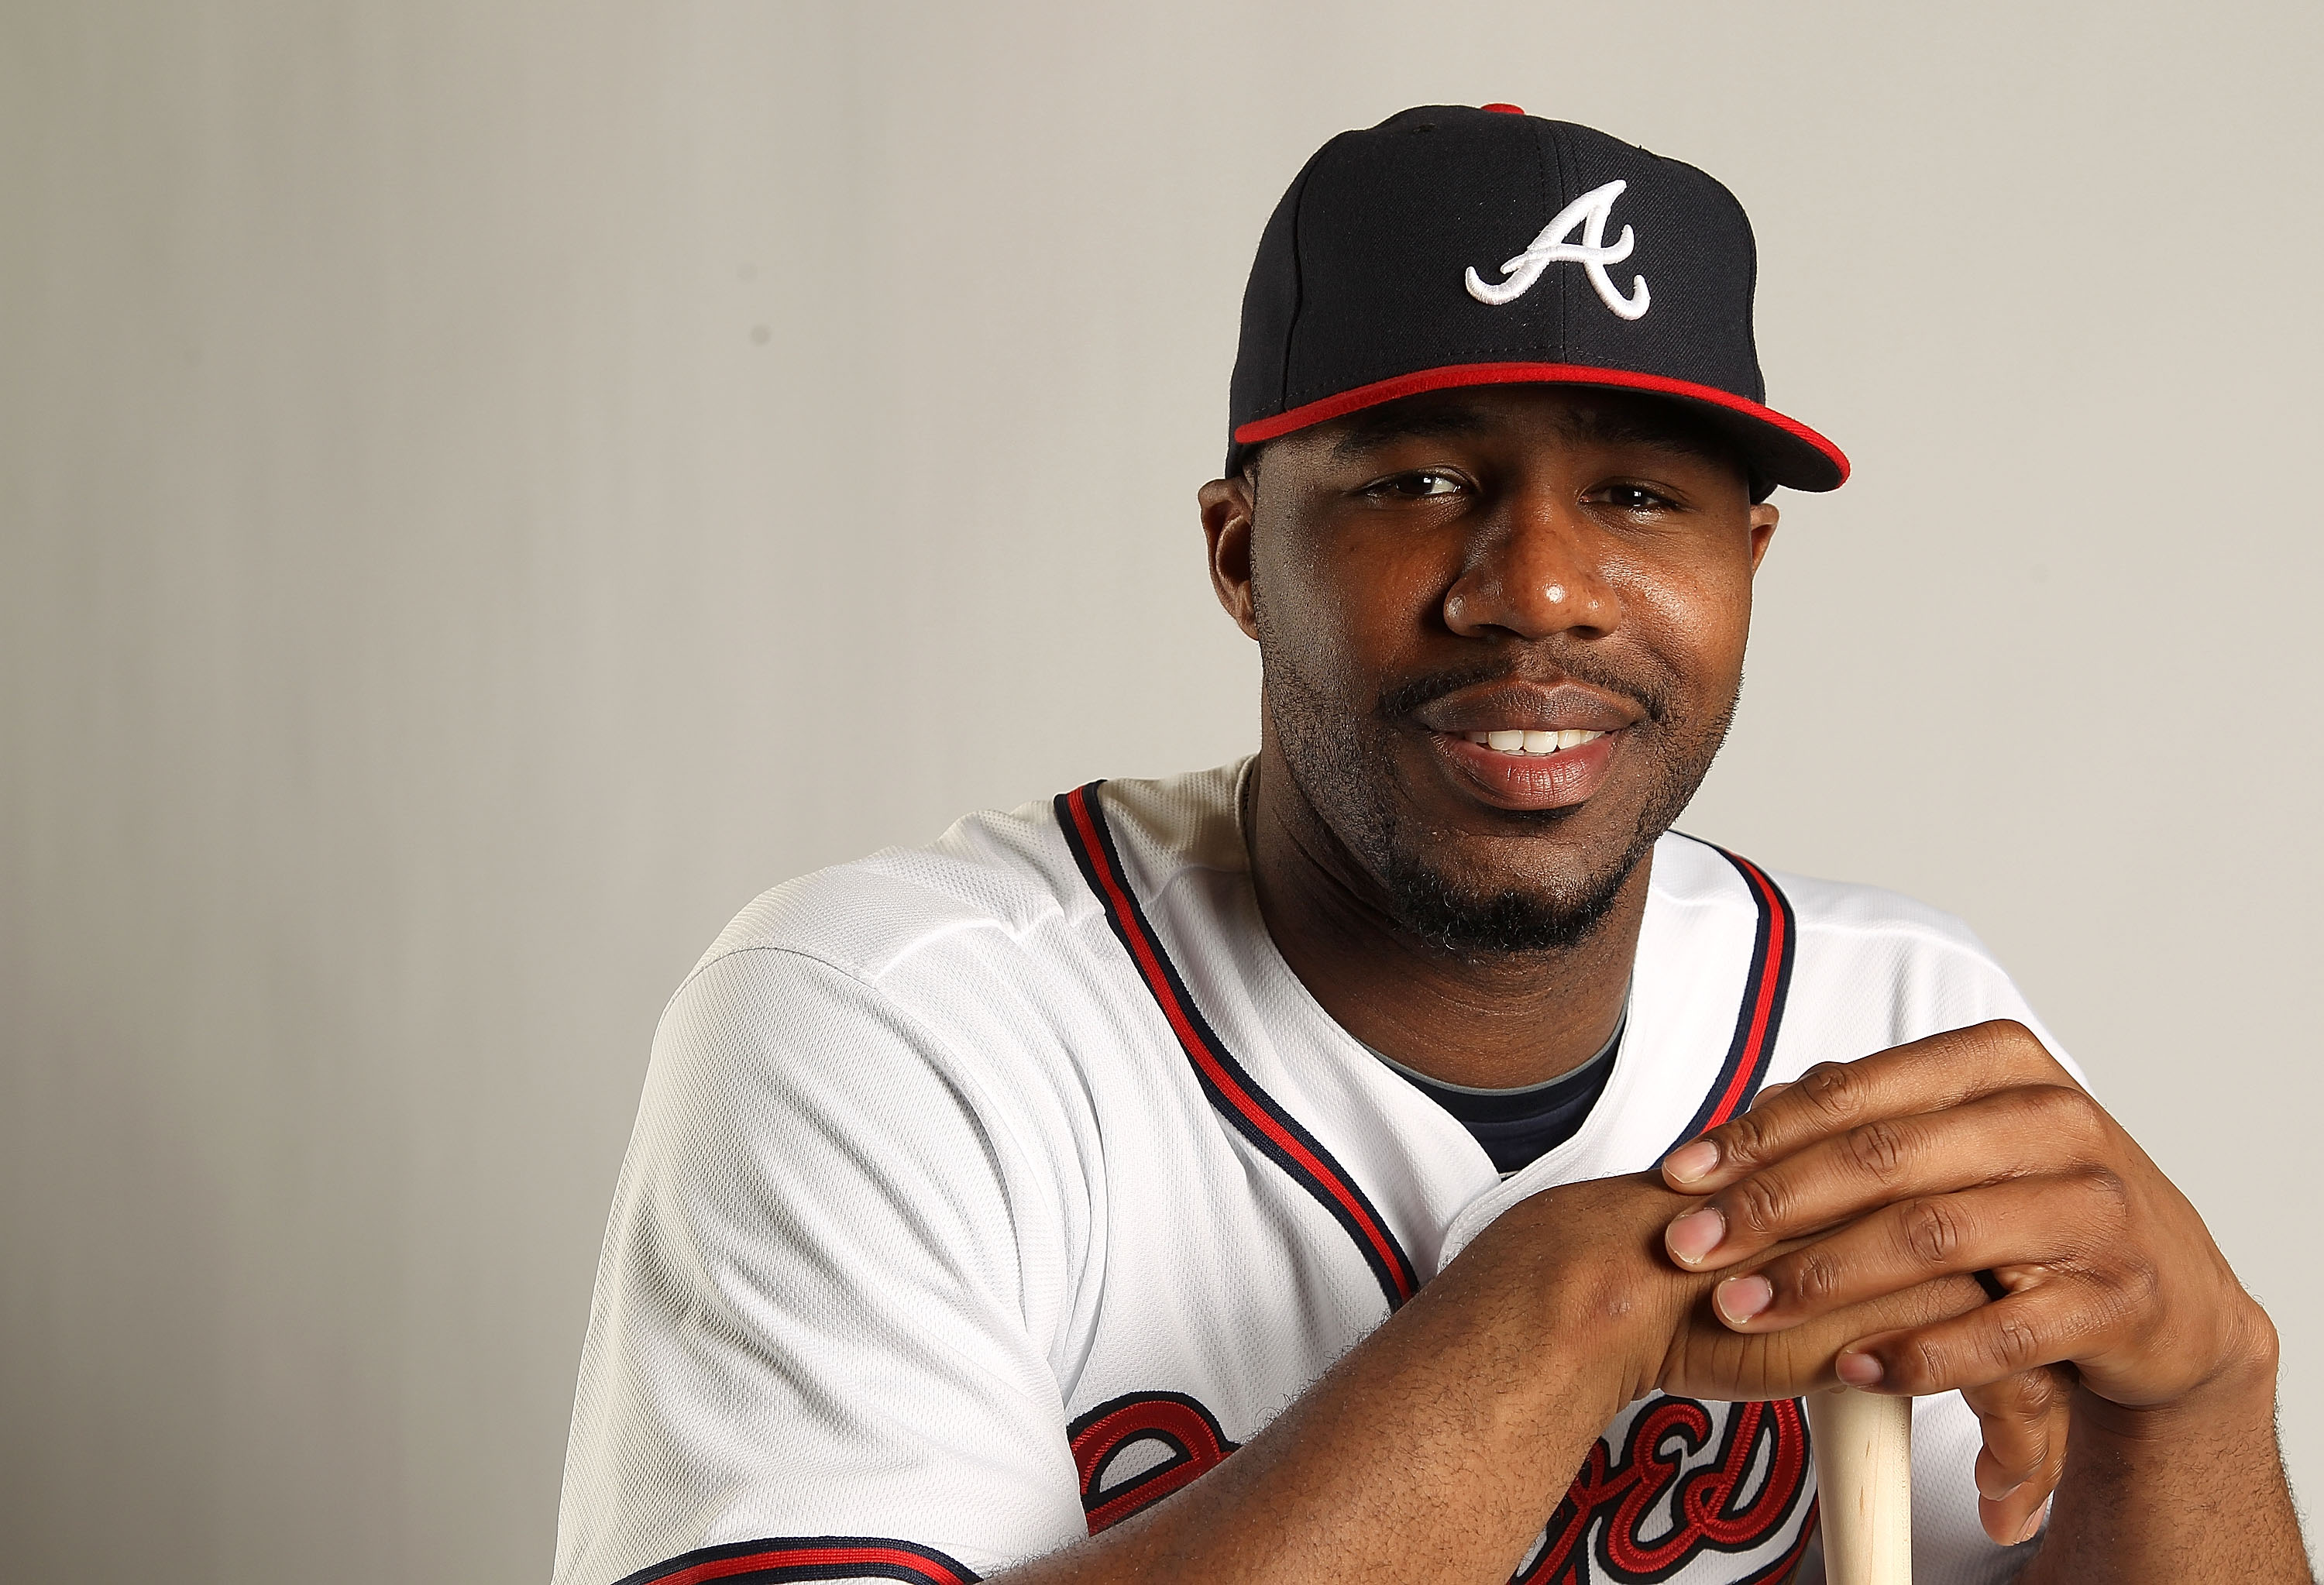 LAKE BUENA VISTA, FL - FEBRUARY 21:  Jason Heyward #22 of the Atlanta Braves during Photo Day at  Champion Stadium at ESPN Wide World of Sports of Complex on February 21, 2011 in Lake Buena Vista, Florida. (Photo by Mike Ehrmann/Getty Images)